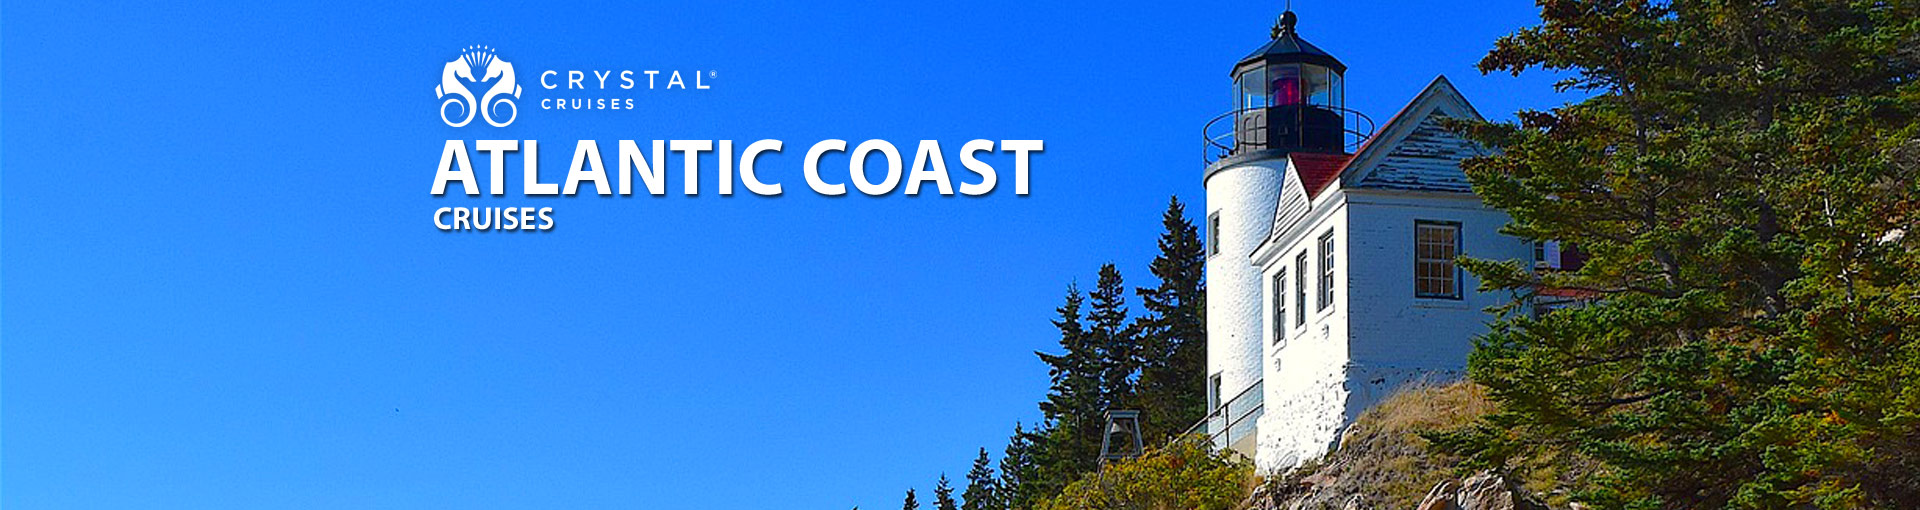 Crystal Cruises U. S. Atlantic Coast Cruises